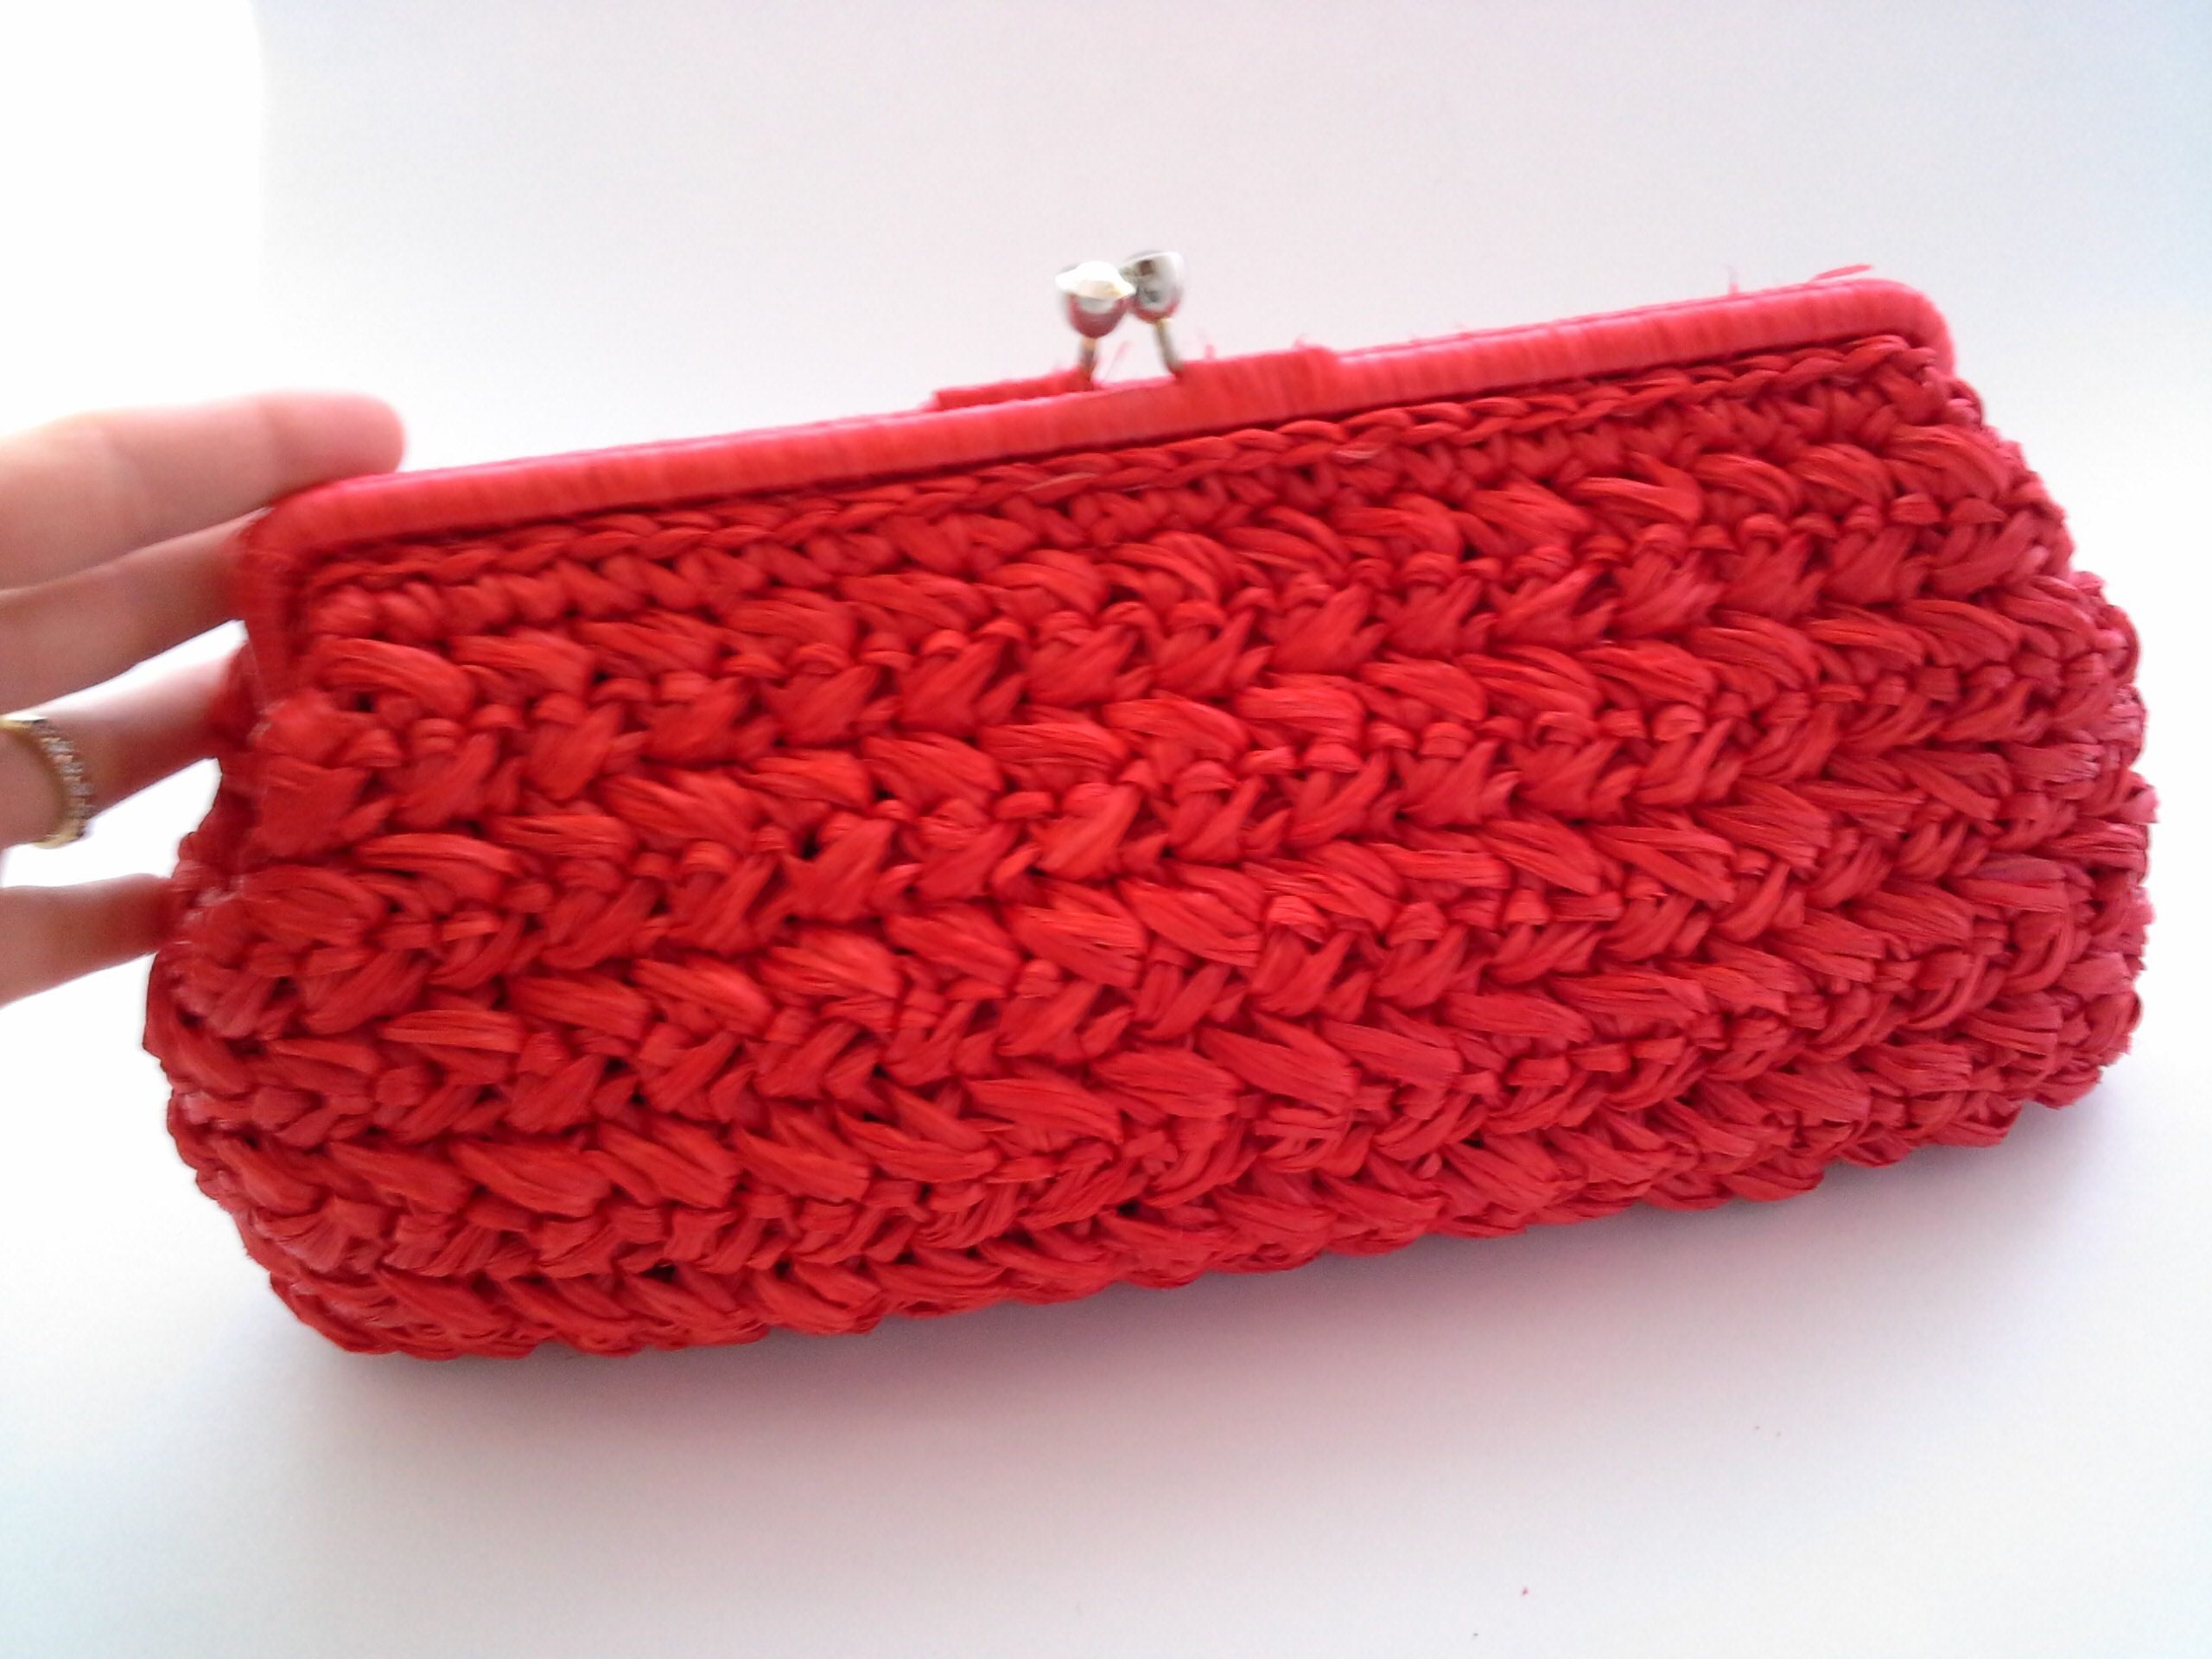 734be875a86 Red Straw Clutch, Vintage Red Clutch, Made in Japan Clutch, Japan ...